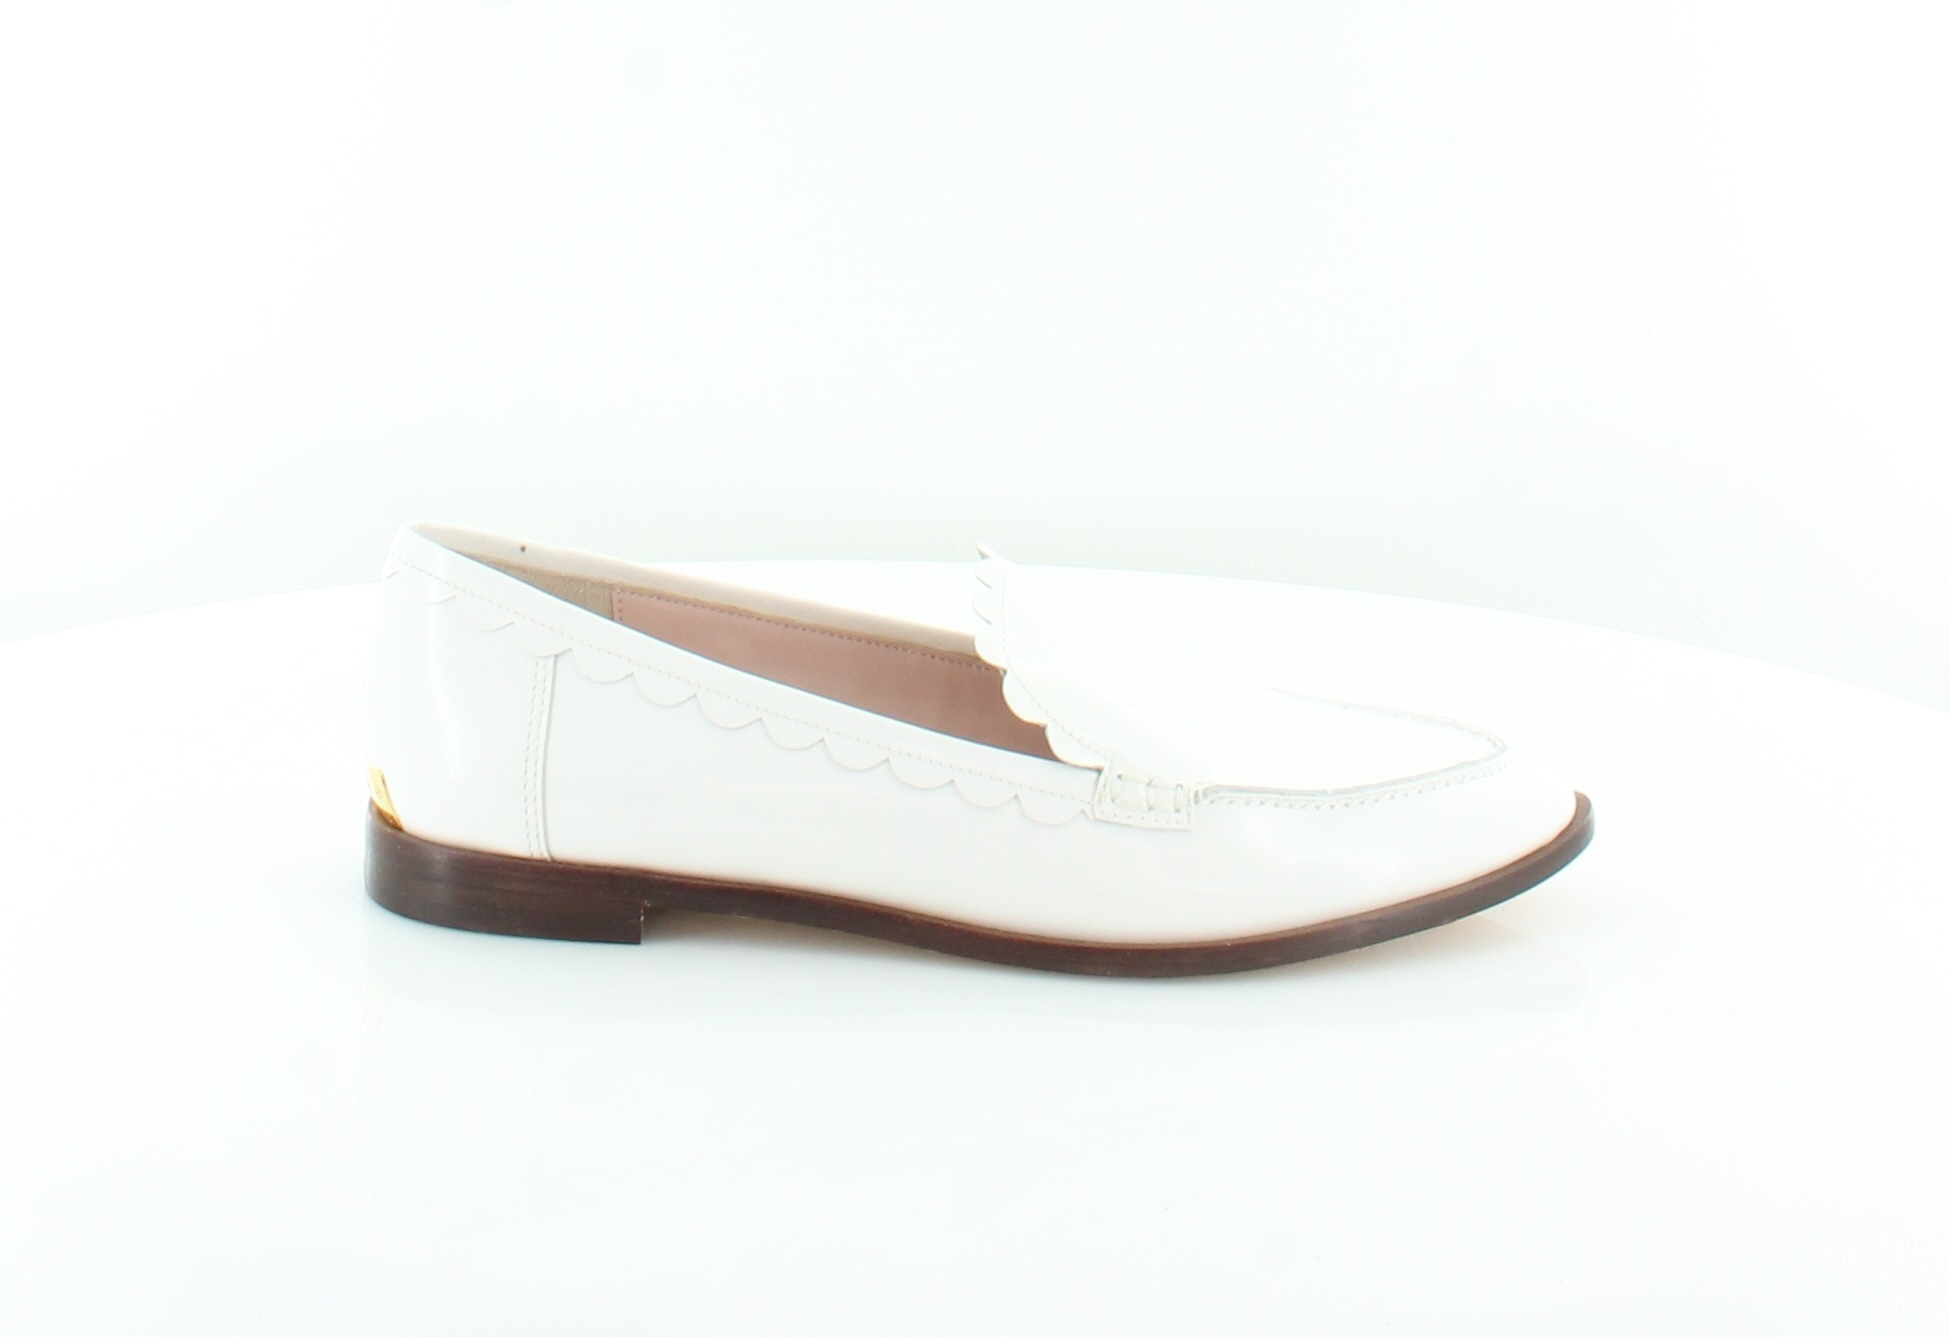 95bbc4f01ae2 Kate Spade New Cape White Womens Shoes Size 7 M Flats MSRP  258 ...